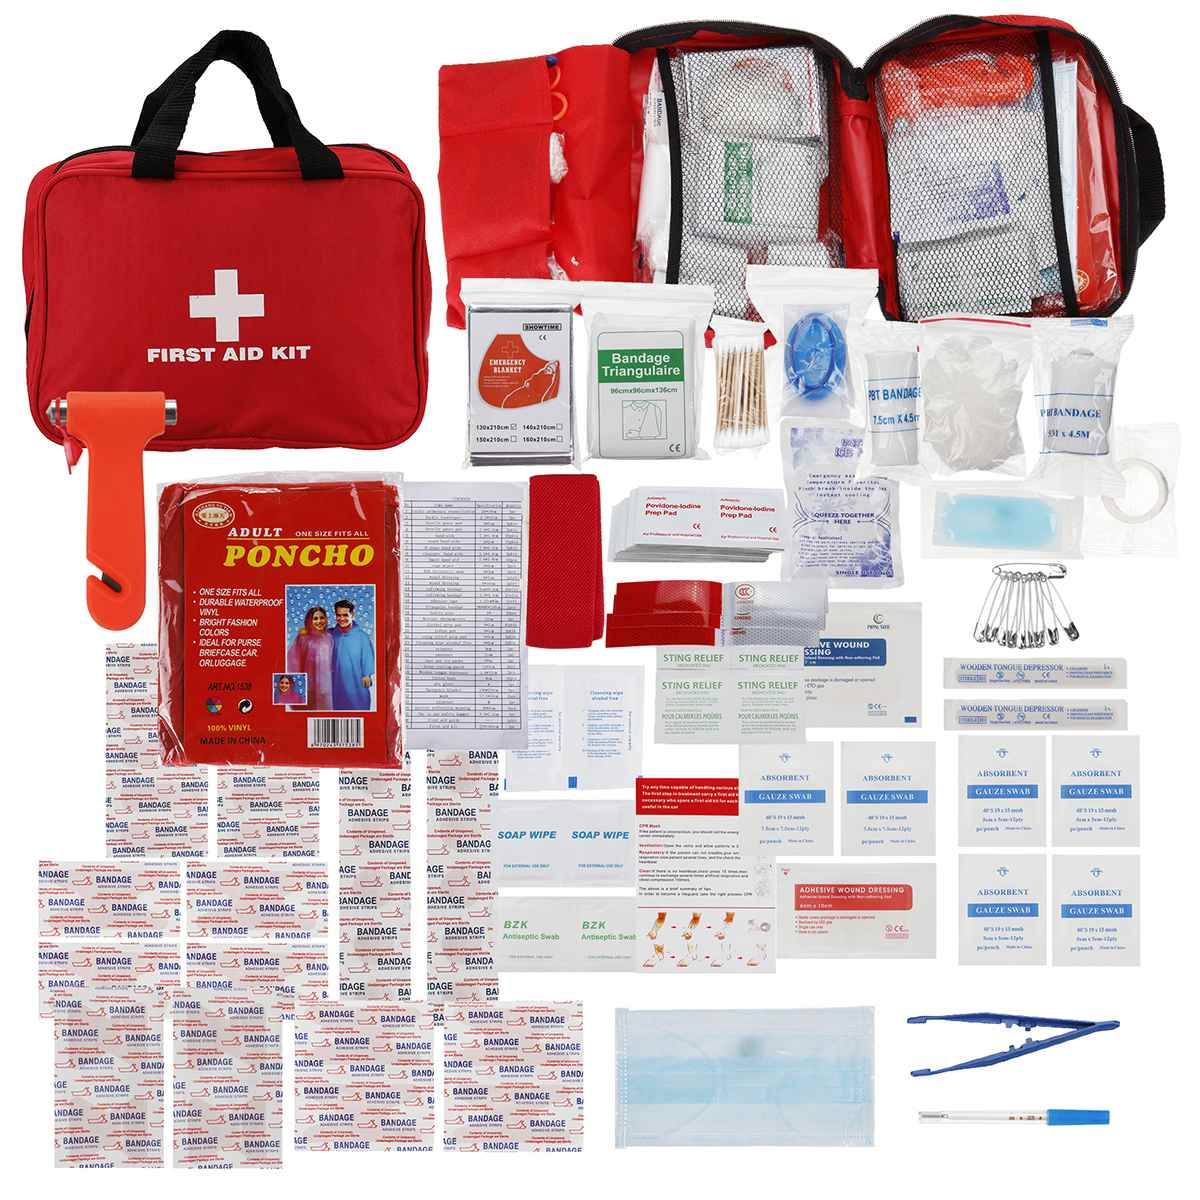 234Pcs/Set SOS Emergency Camping Survival Equipment Small First Aid Kit Portable Travel Medicine Bag As shown